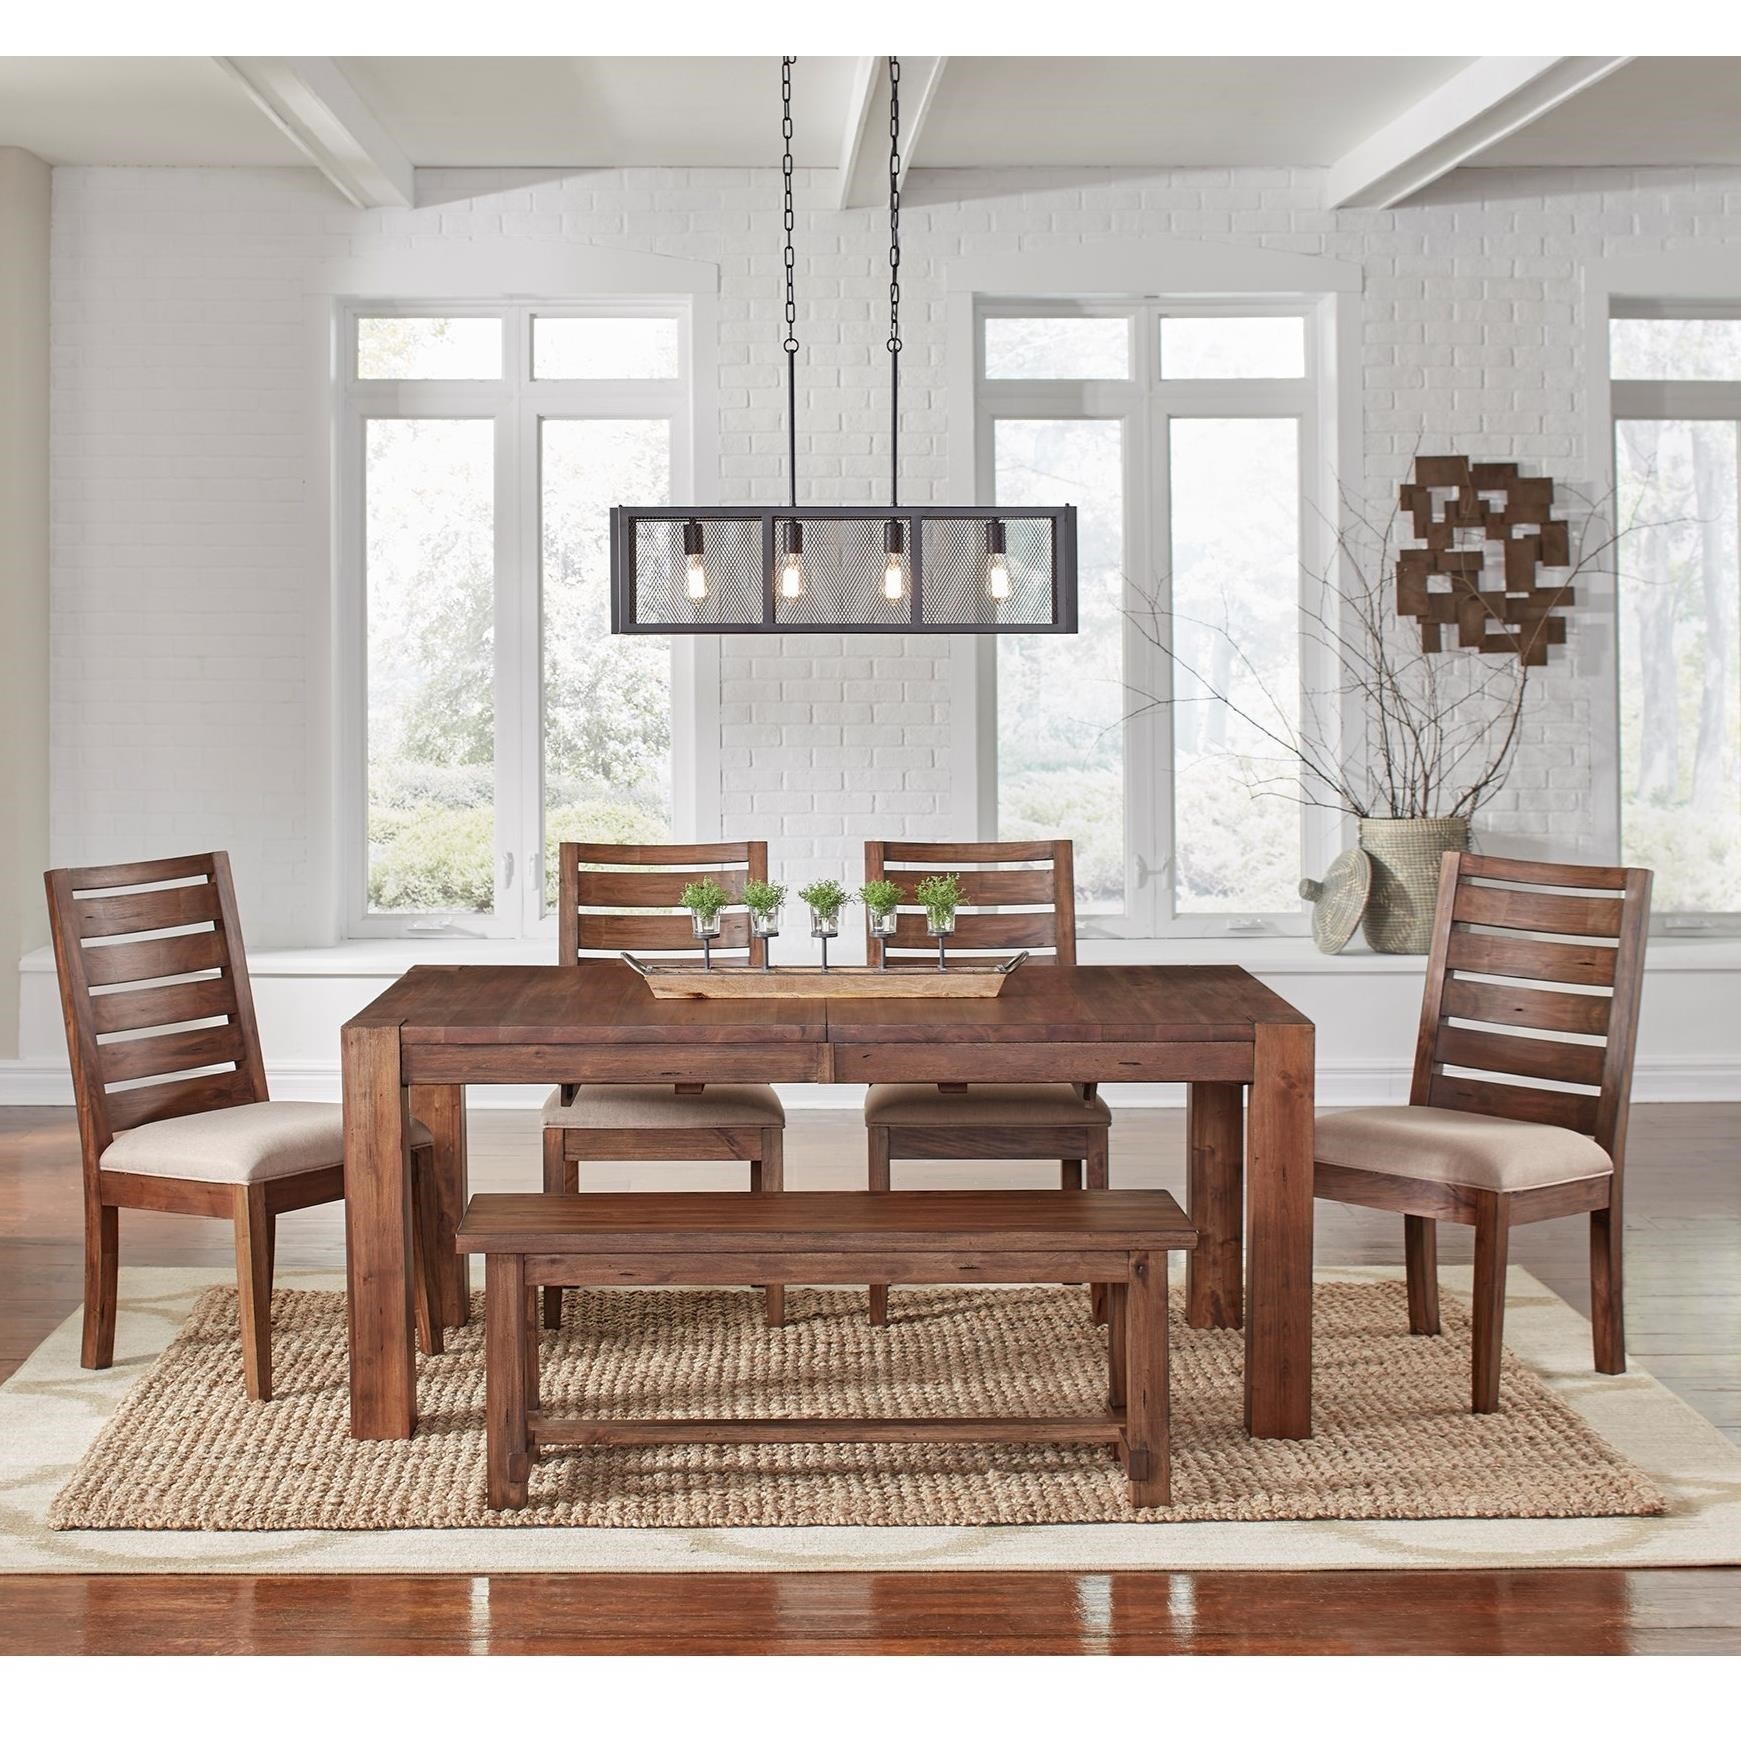 Anacortes 6 Piece Dining Set by AAmerica at Rife's Home Furniture